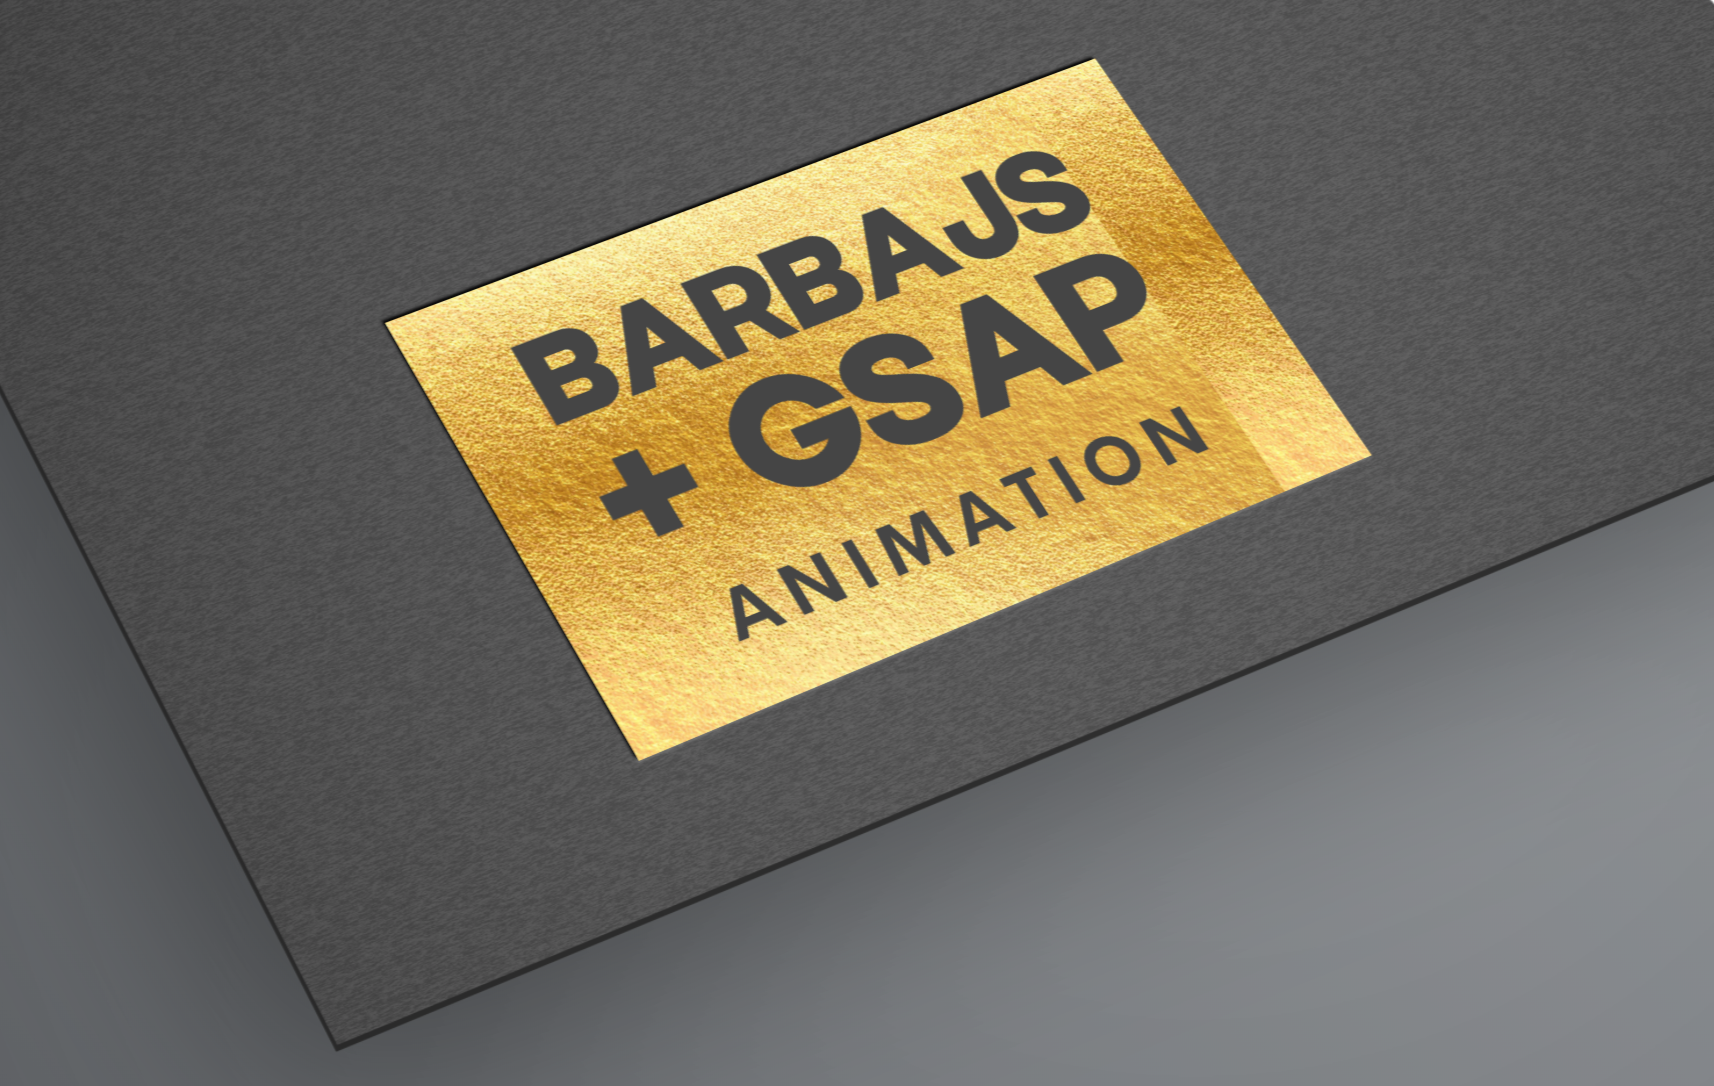 Barbajs with GSAP Animation